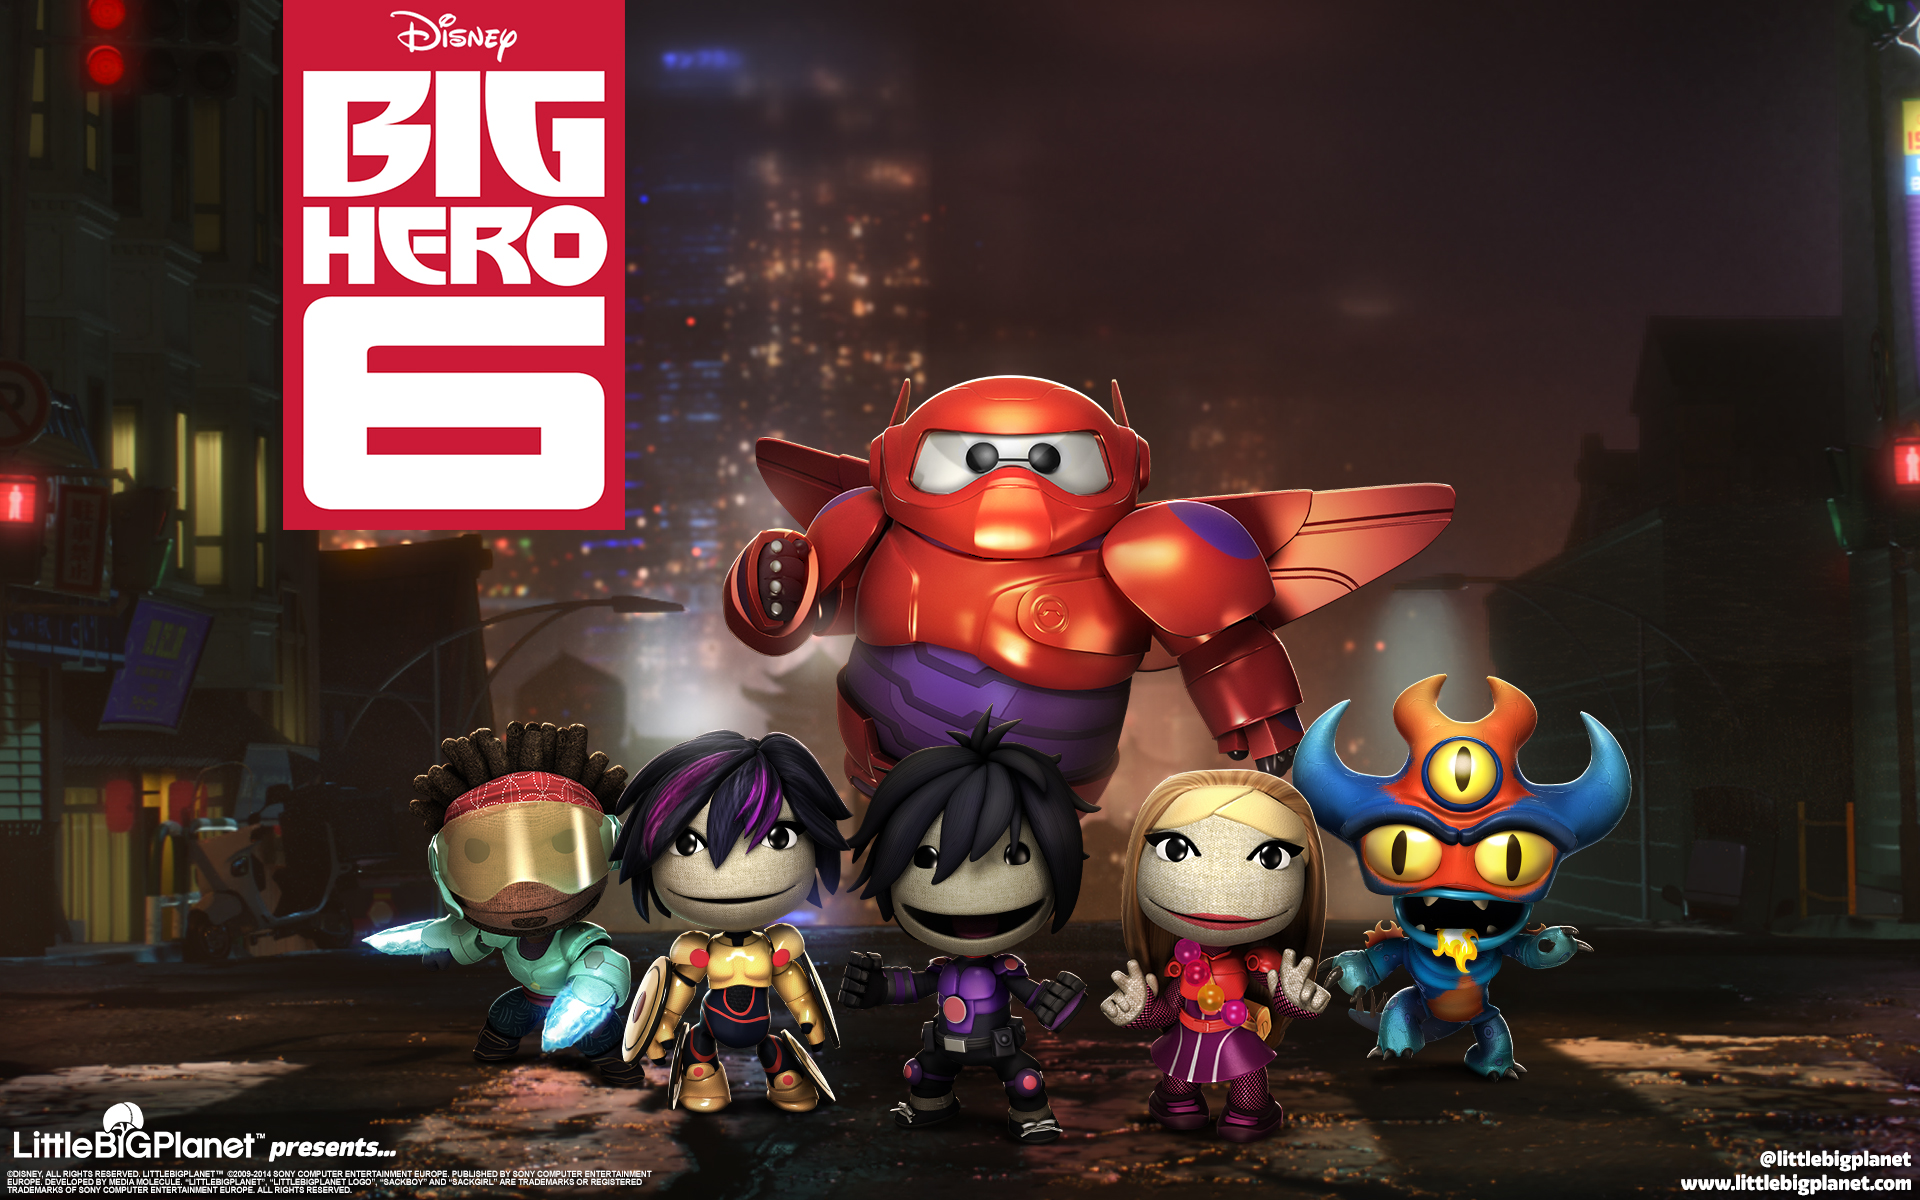 LittleBigPlanet Big Hero 6 3343.19 Kb